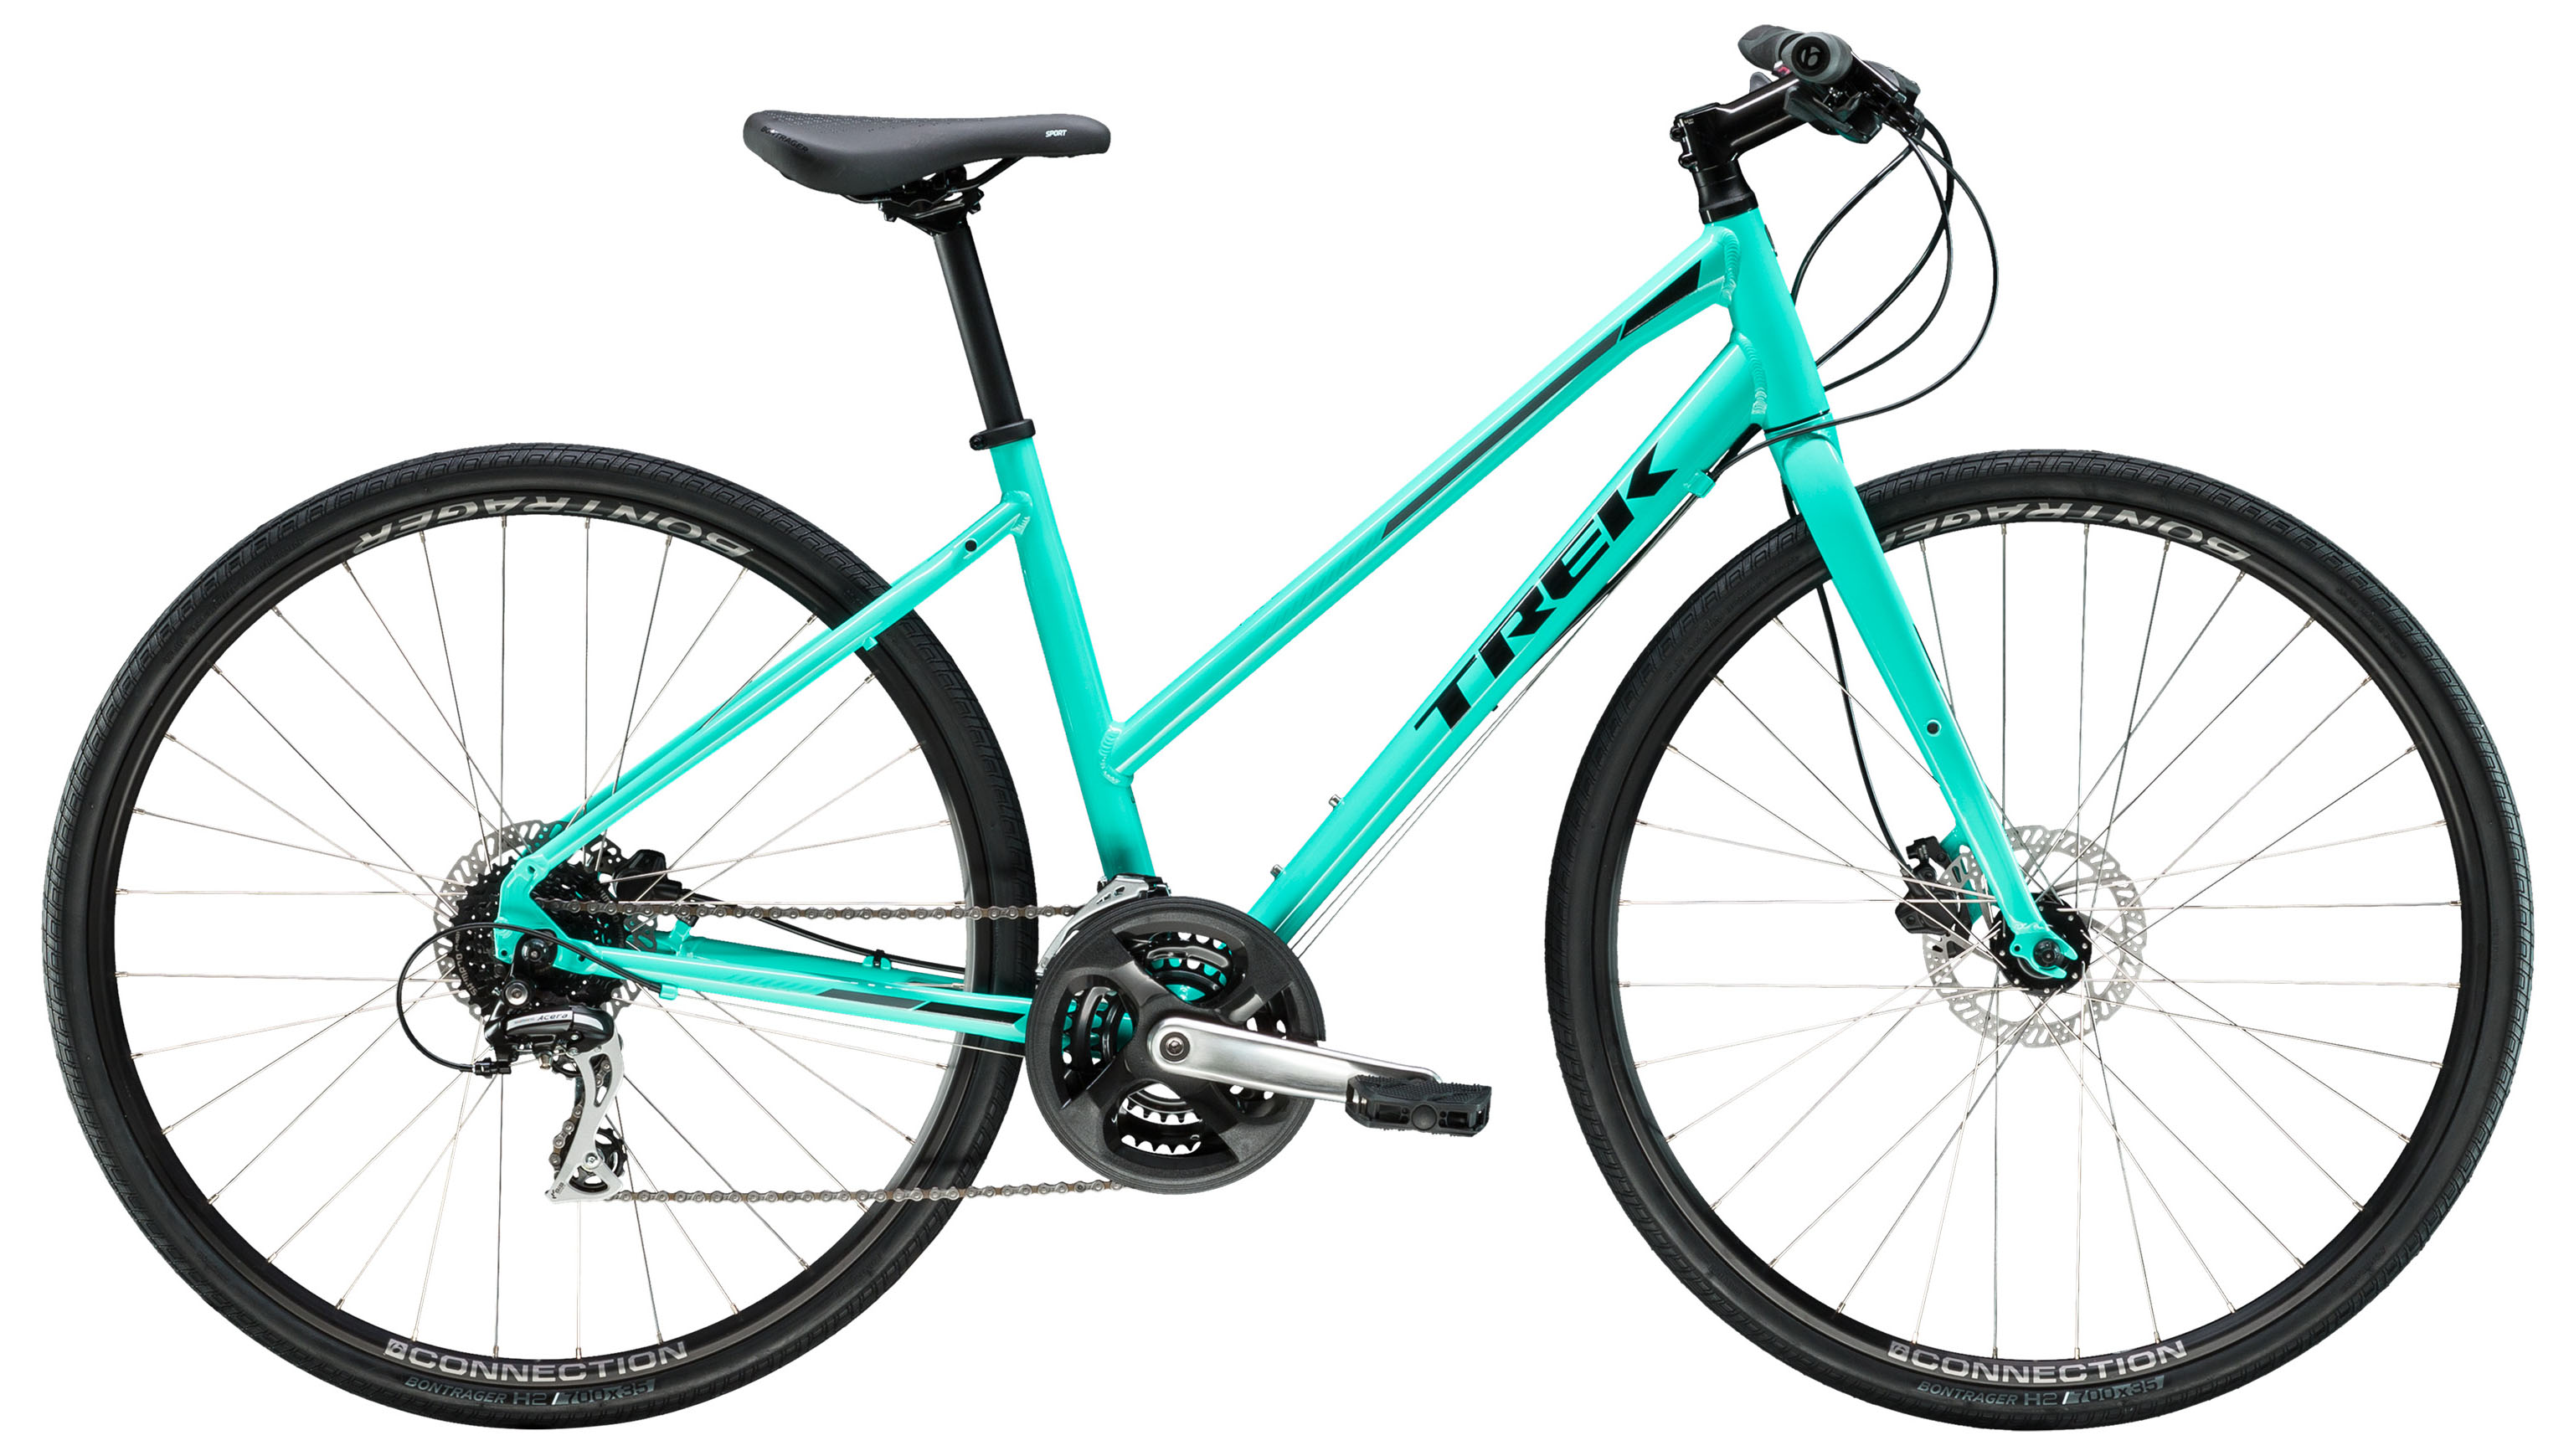 Велосипед Trek FX 2 Womens Disc Stagger 2019 велосипед forward sporting 2 0 disc 2014